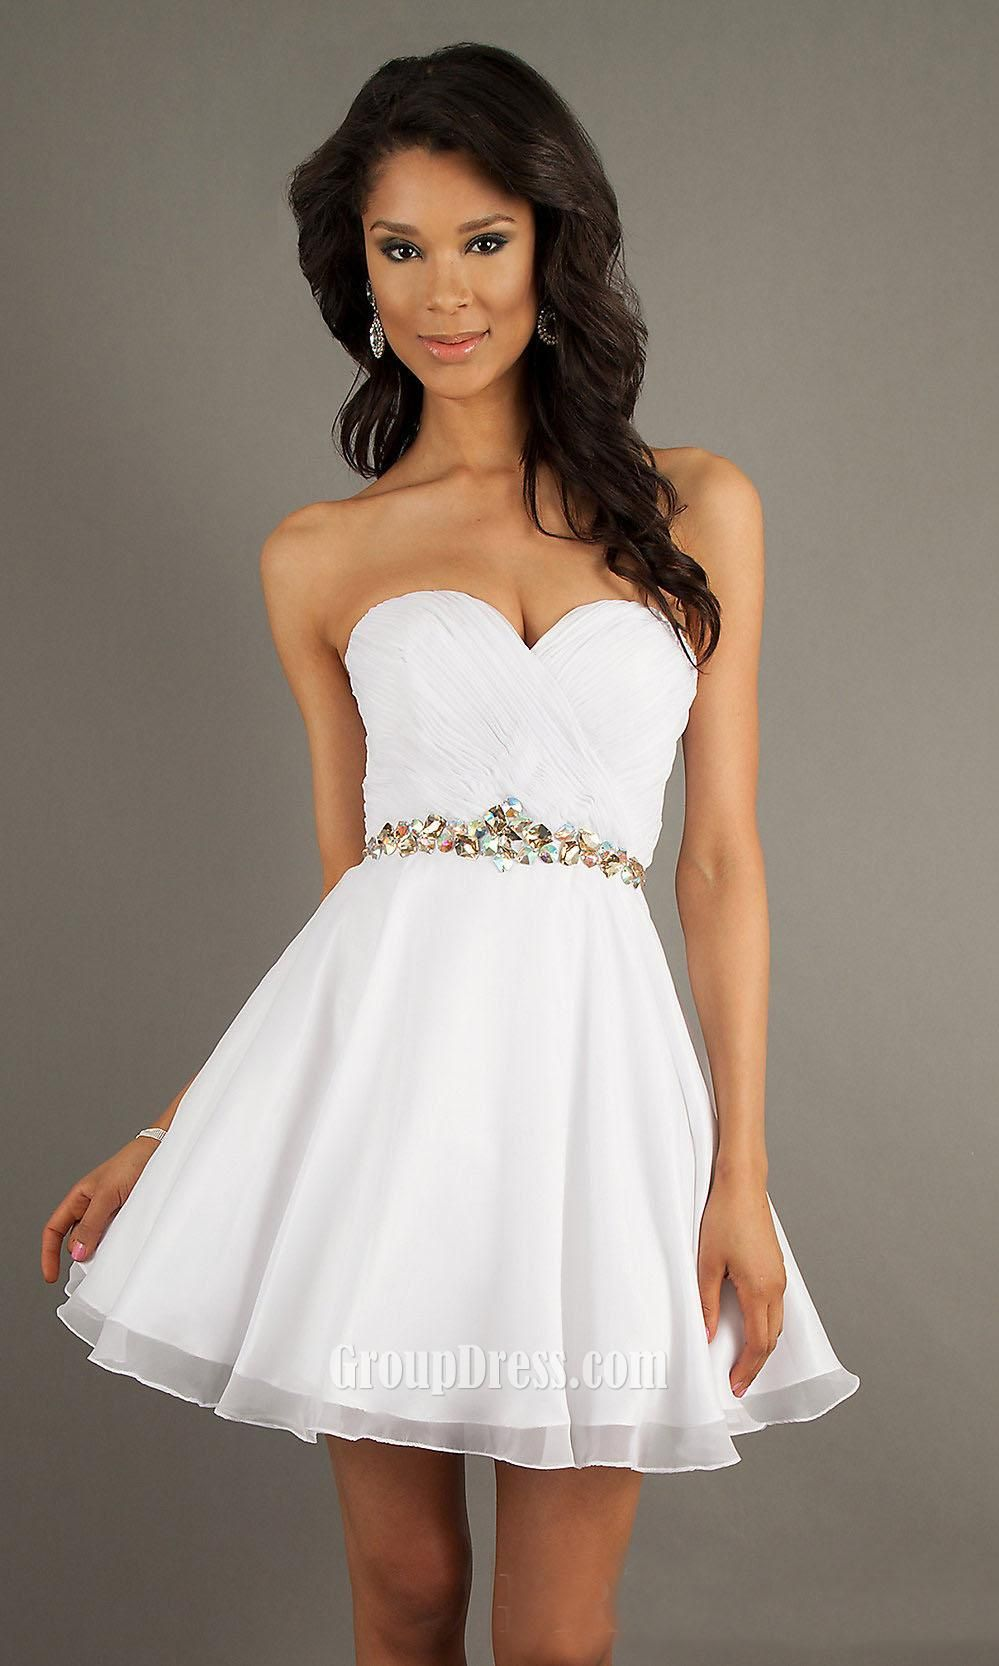 White Chiffon Sweetheart Strapless A Line Short Prom Dress With ...